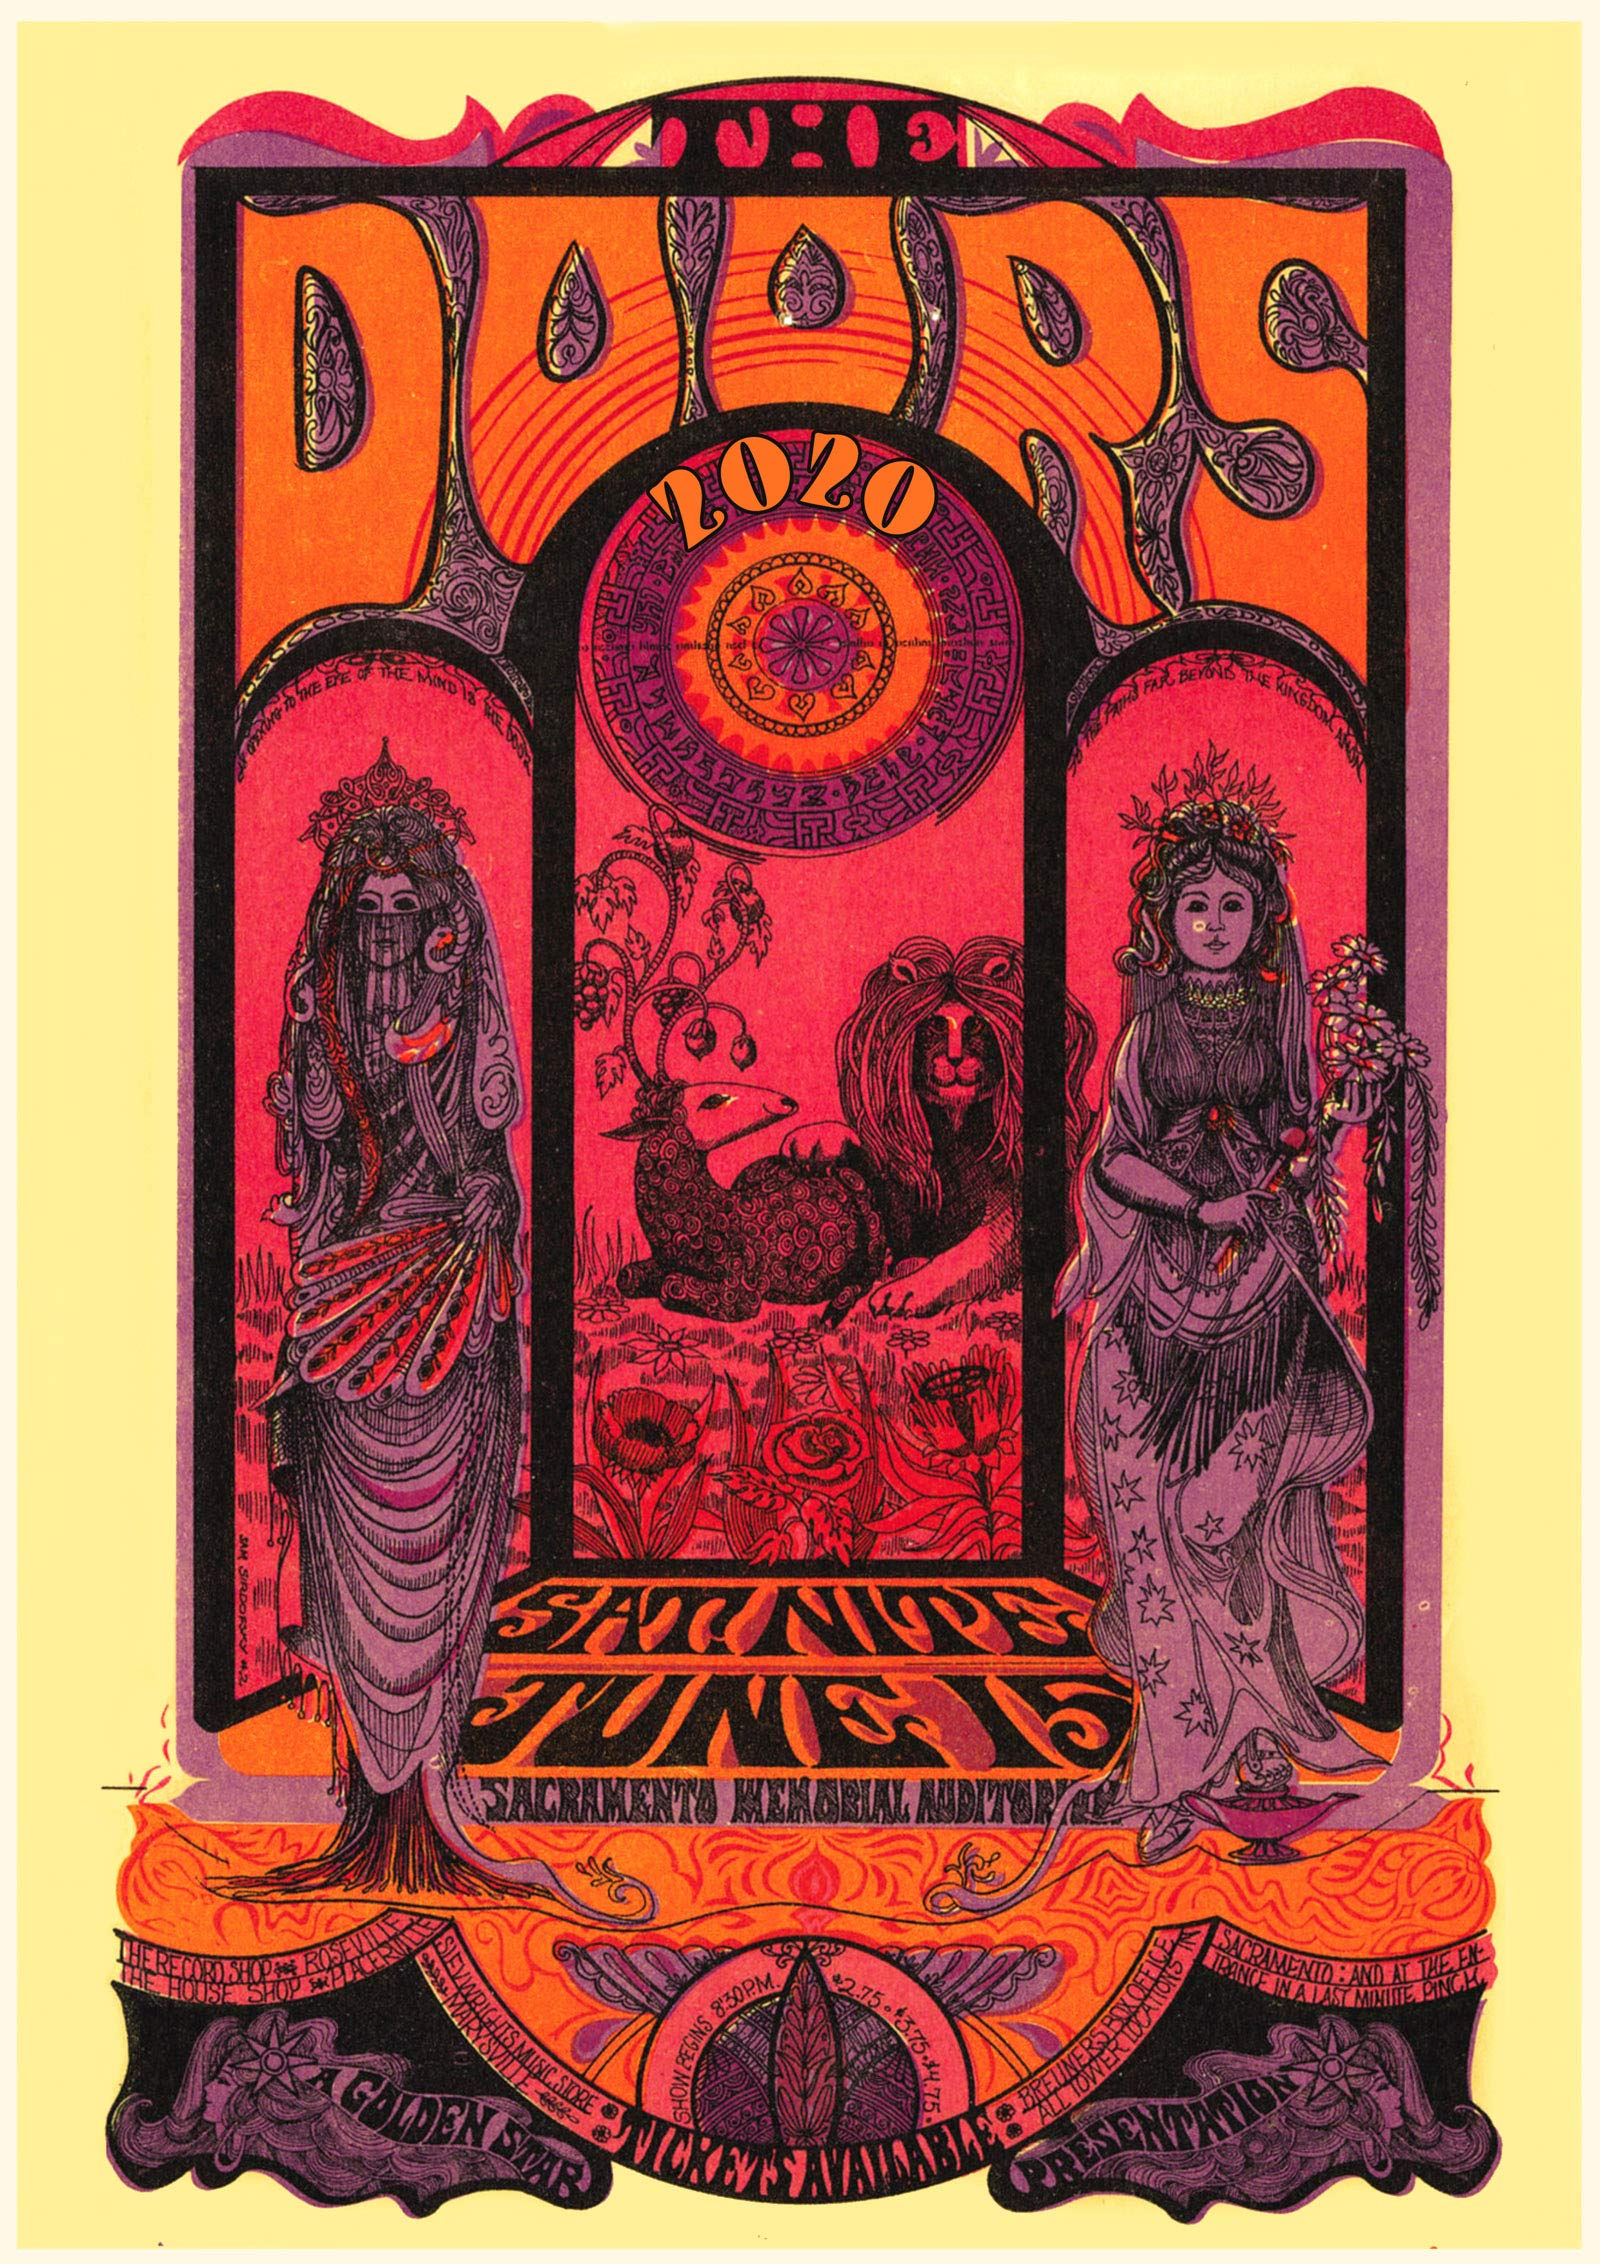 Wall Calendar 2020 12 Pages 8 X11 The Doors Vintage Musical